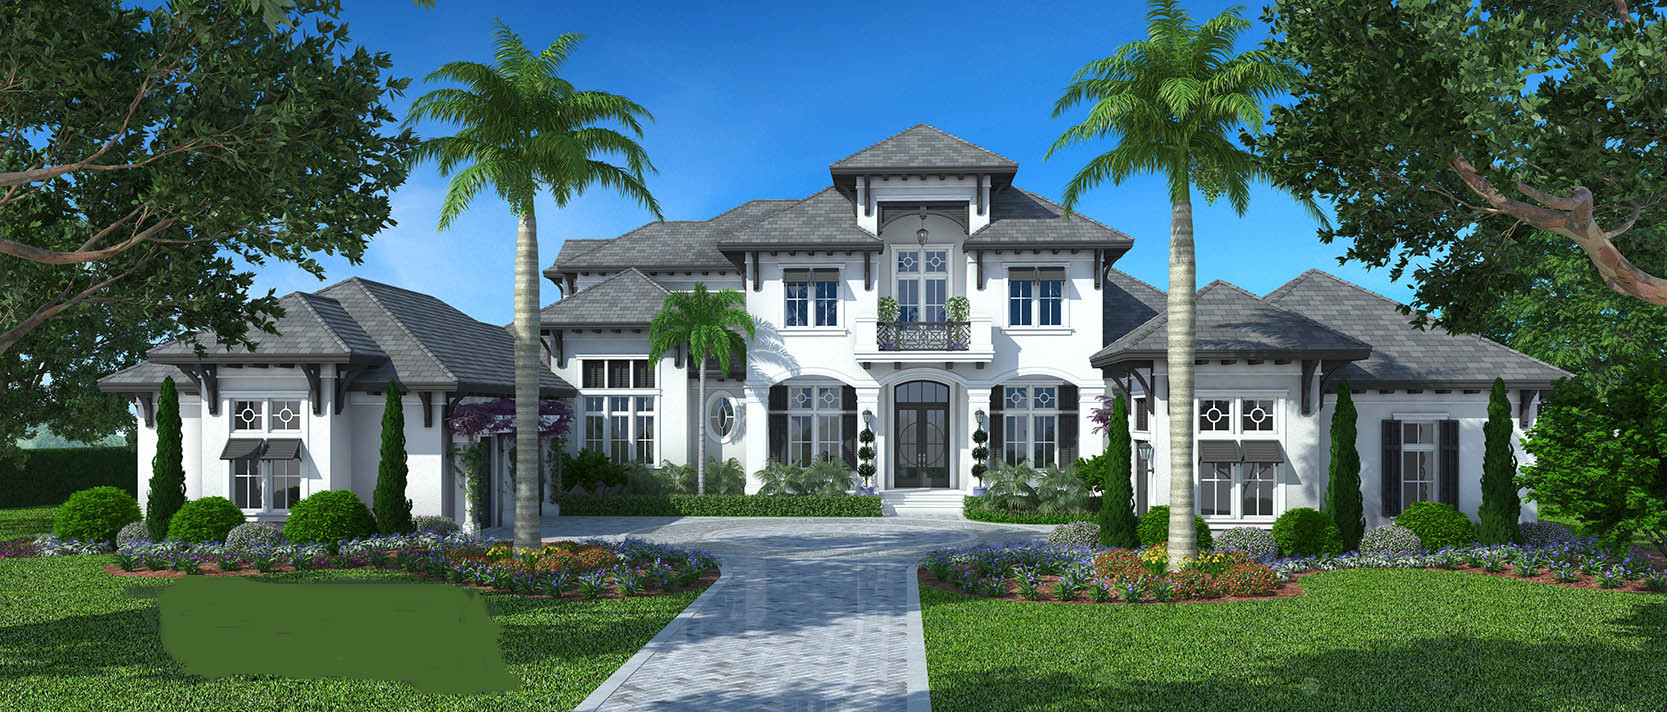 Luxury House Plan #175-1094: 4 Bedrm, 6200 Sq Ft Home